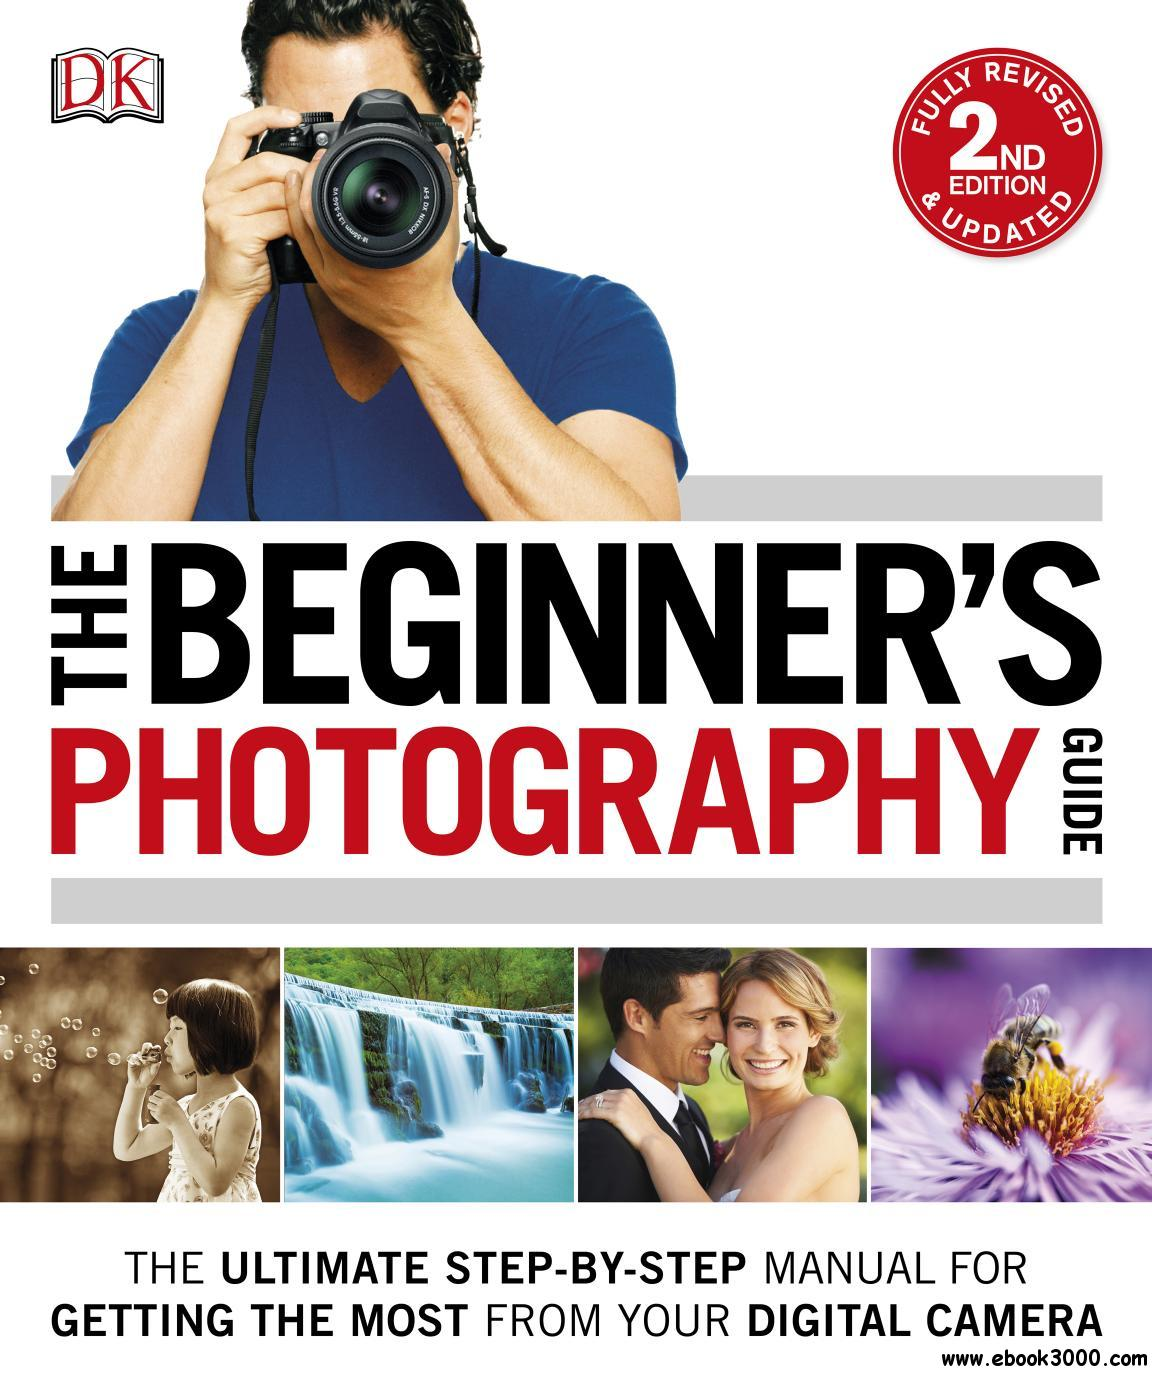 The Beginner's Photography Guide: The Ultimate Step-by-Step Manual for Getting the Most from your Digital Camera, 2nd Edition